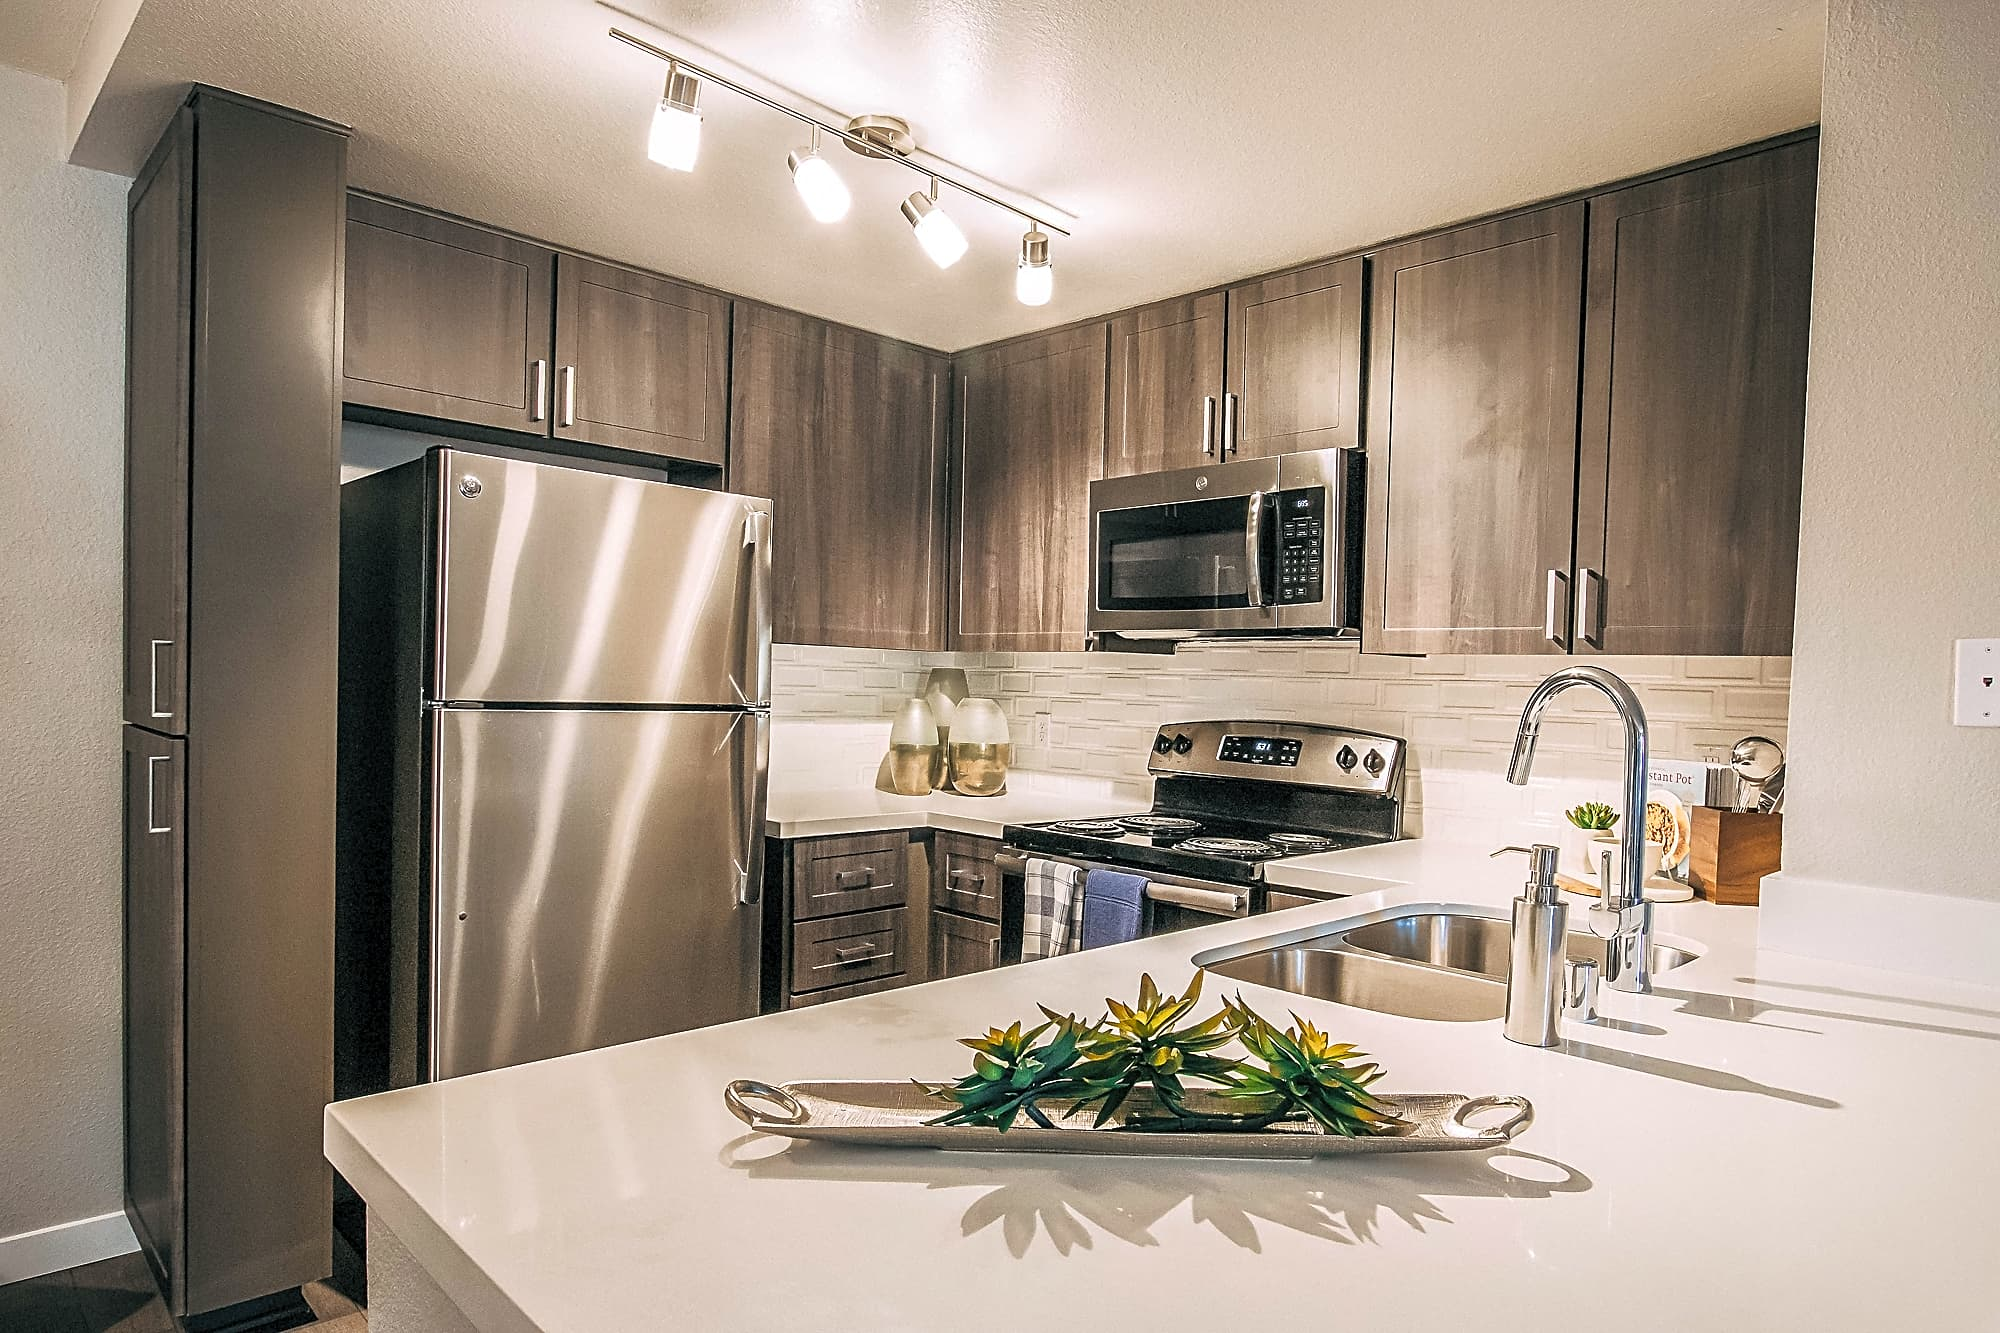 Quartz countertops in newly renovated kitchens